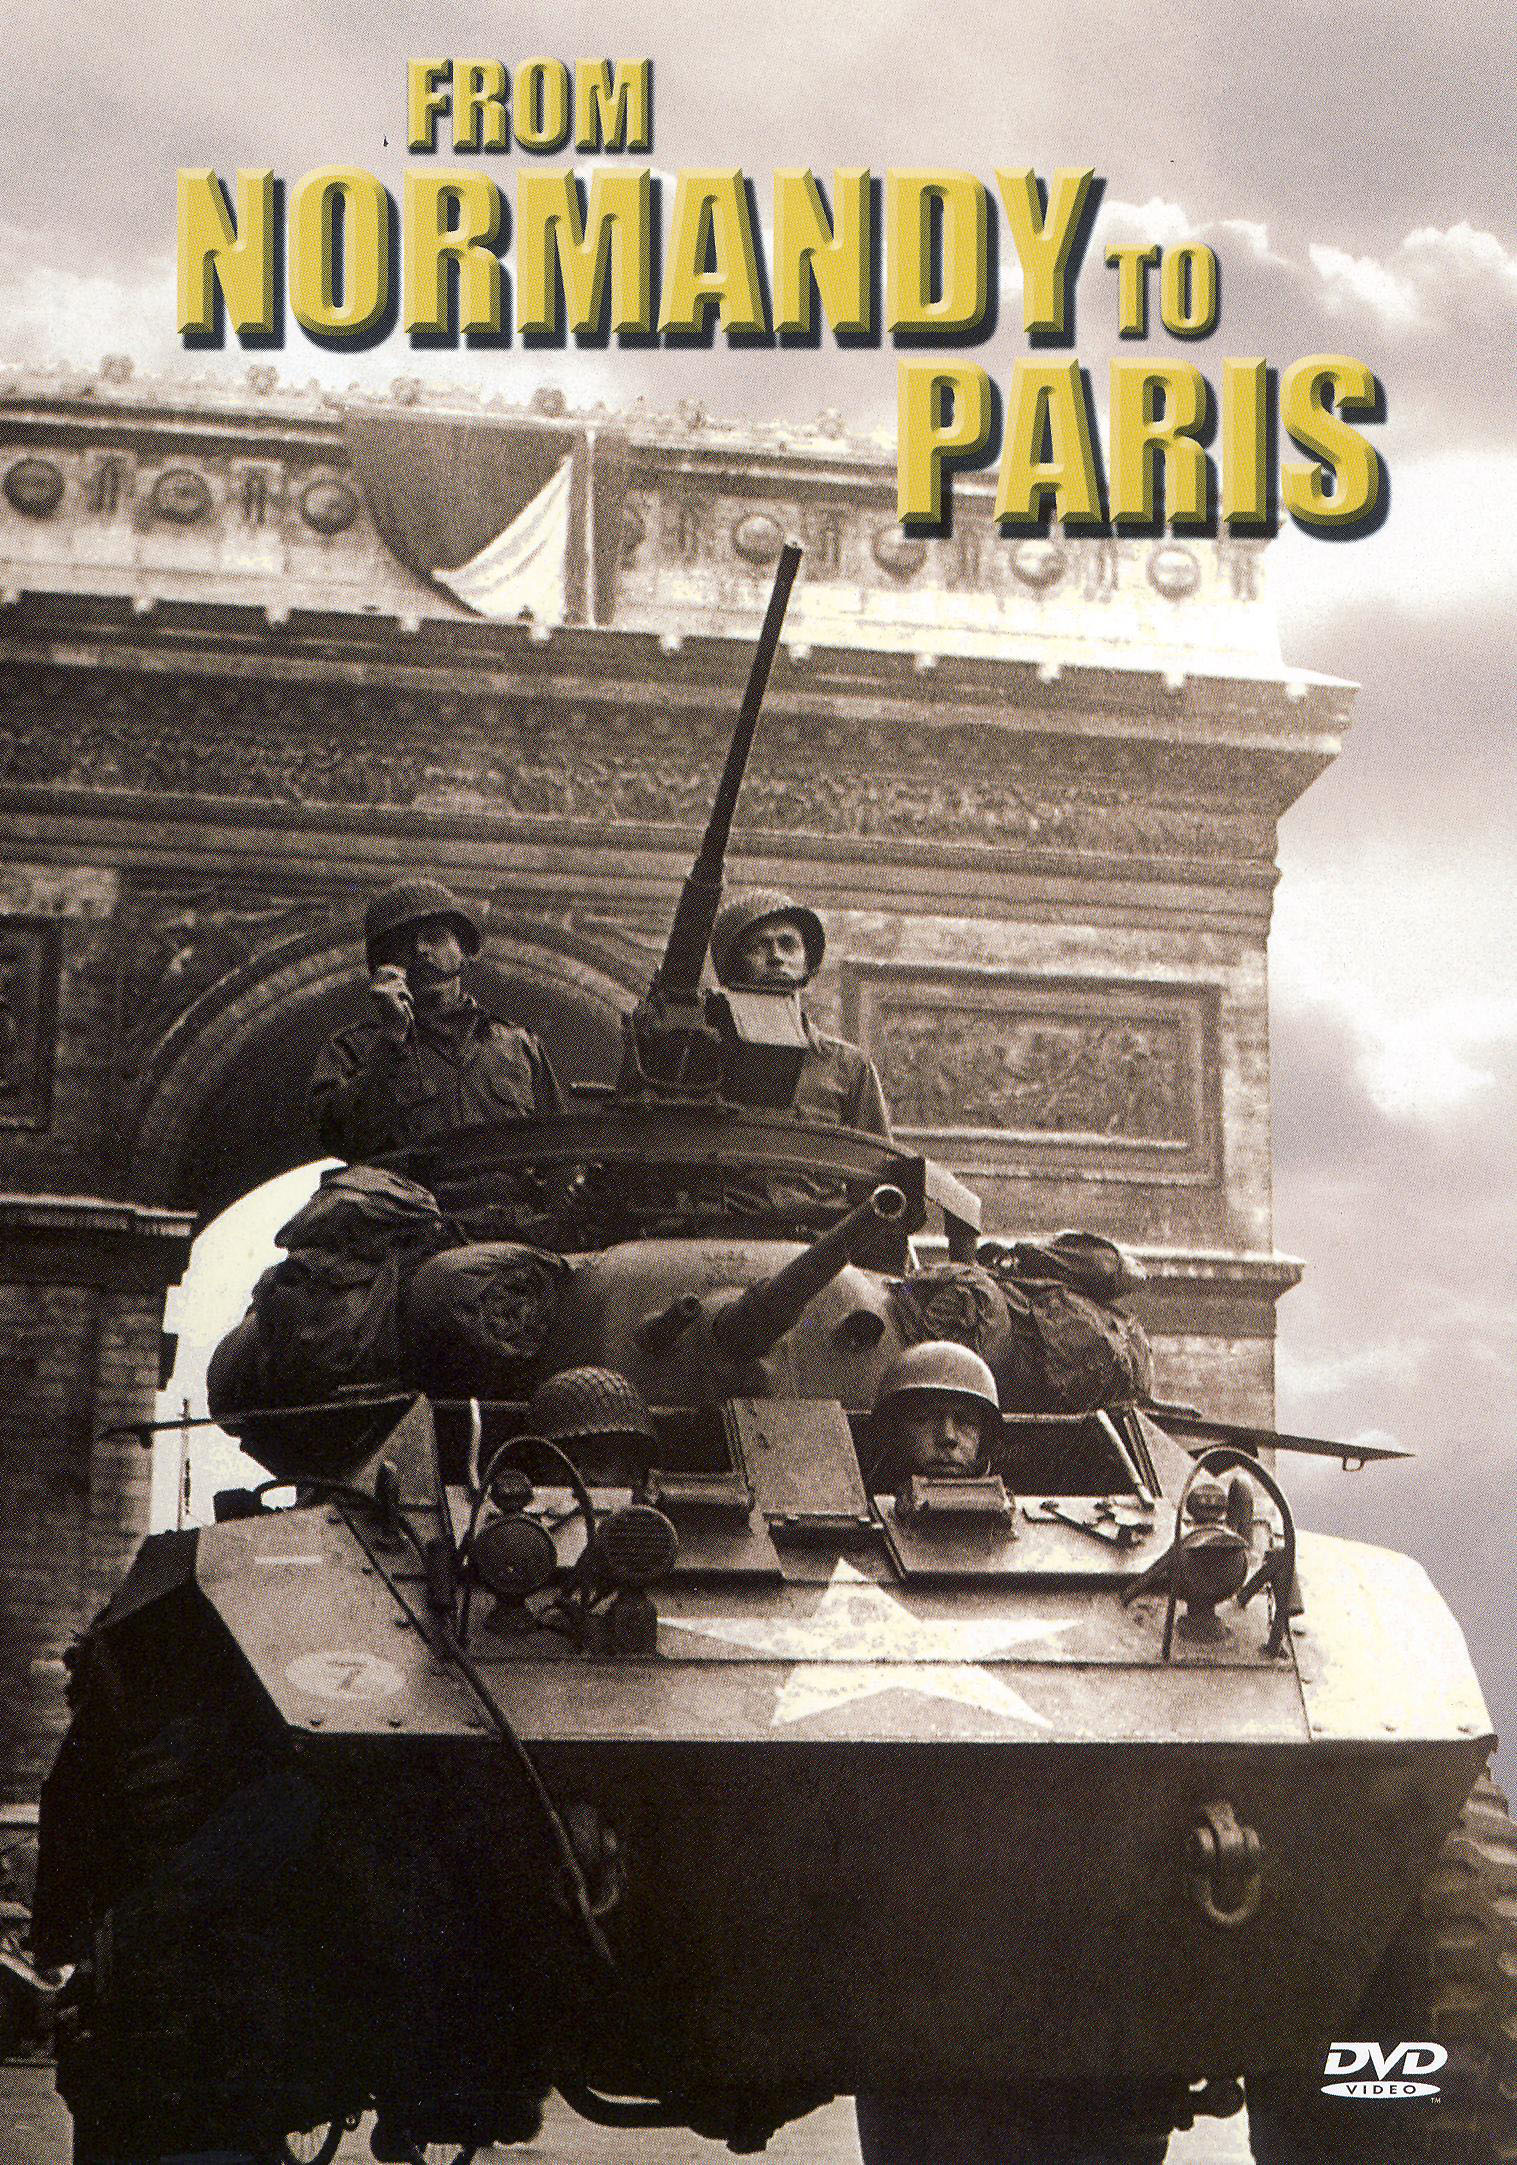 Great Battles of WWII: Europe - From Normandy to Paris